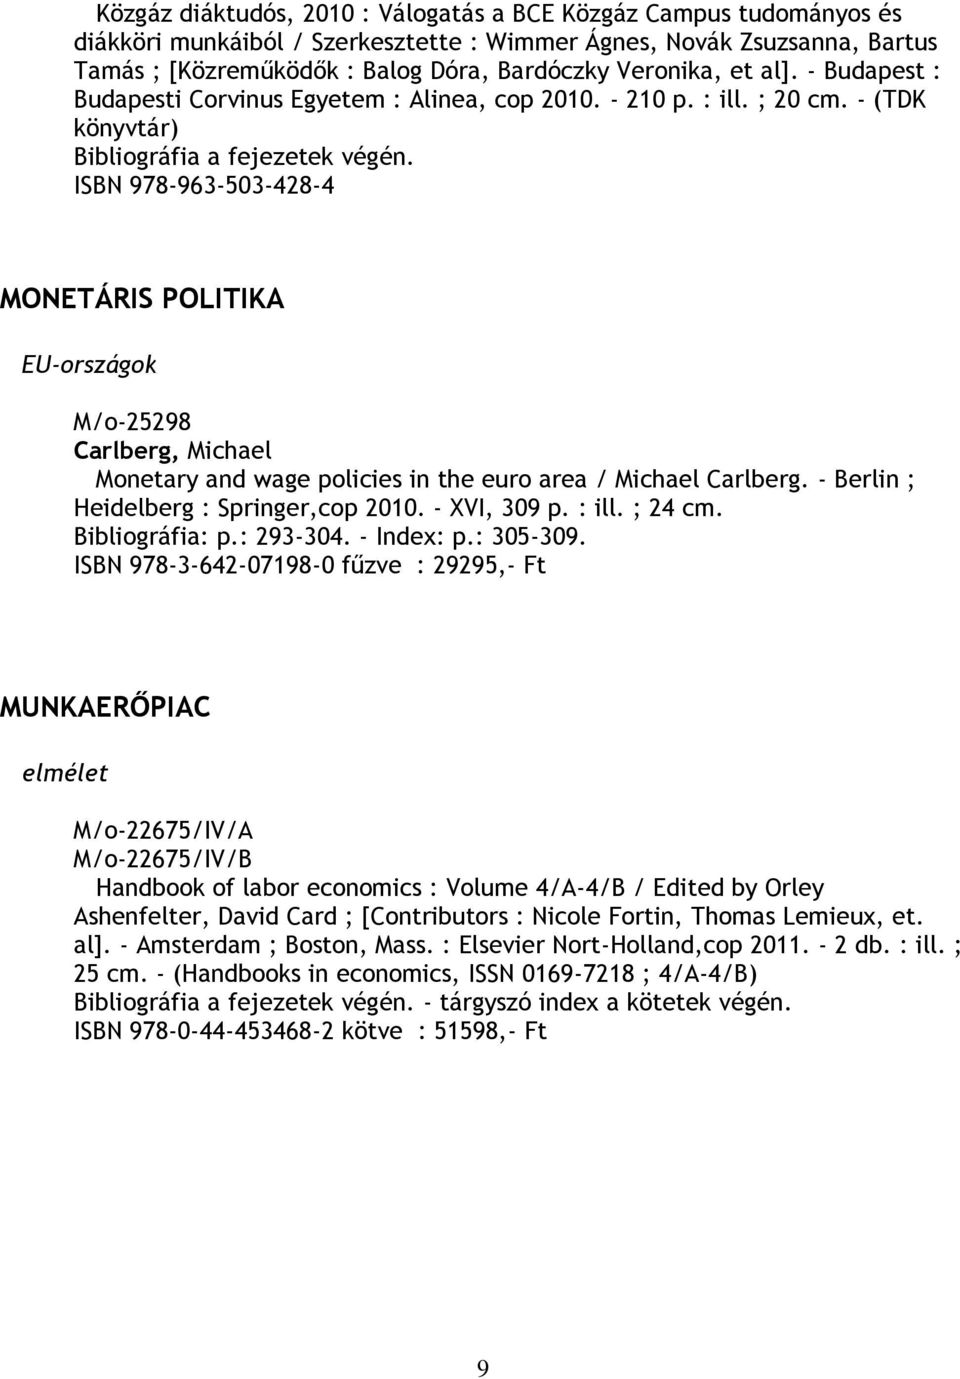 ISBN 978-963-503-428-4 MONETÁRIS POLITIKA EU-országok M/o-25298 Carlberg, Michael Monetary and wage policies in the euro area / Michael Carlberg. - Berlin ; Heidelberg : Springer,cop 2010.